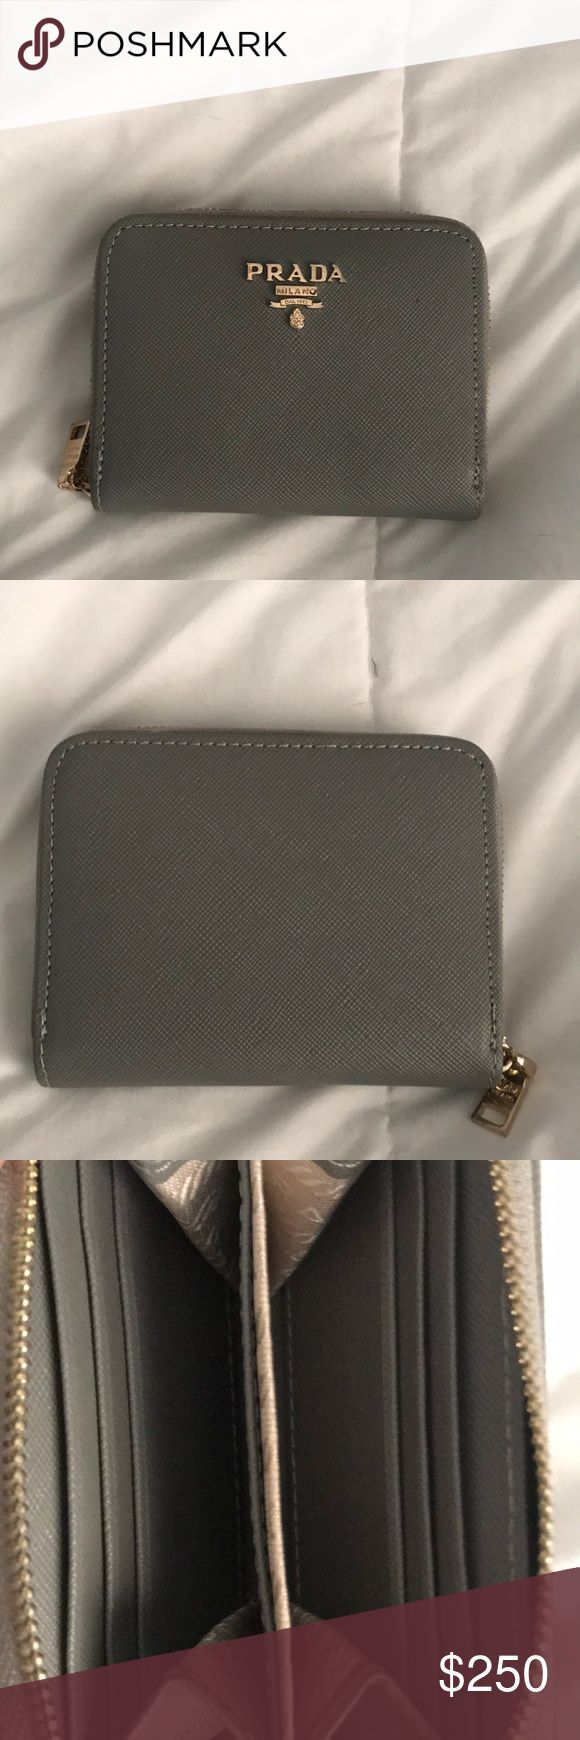 Prada Wallet Gifted to me and my sister a year ago, never used them sadly, they're both basically new and really cute. Has 2 main pockets and two sides have 3 card holders. Really good christmas gift!!! I️ WILL BARGAIN THE PRICE!! Prada Bags Wallets